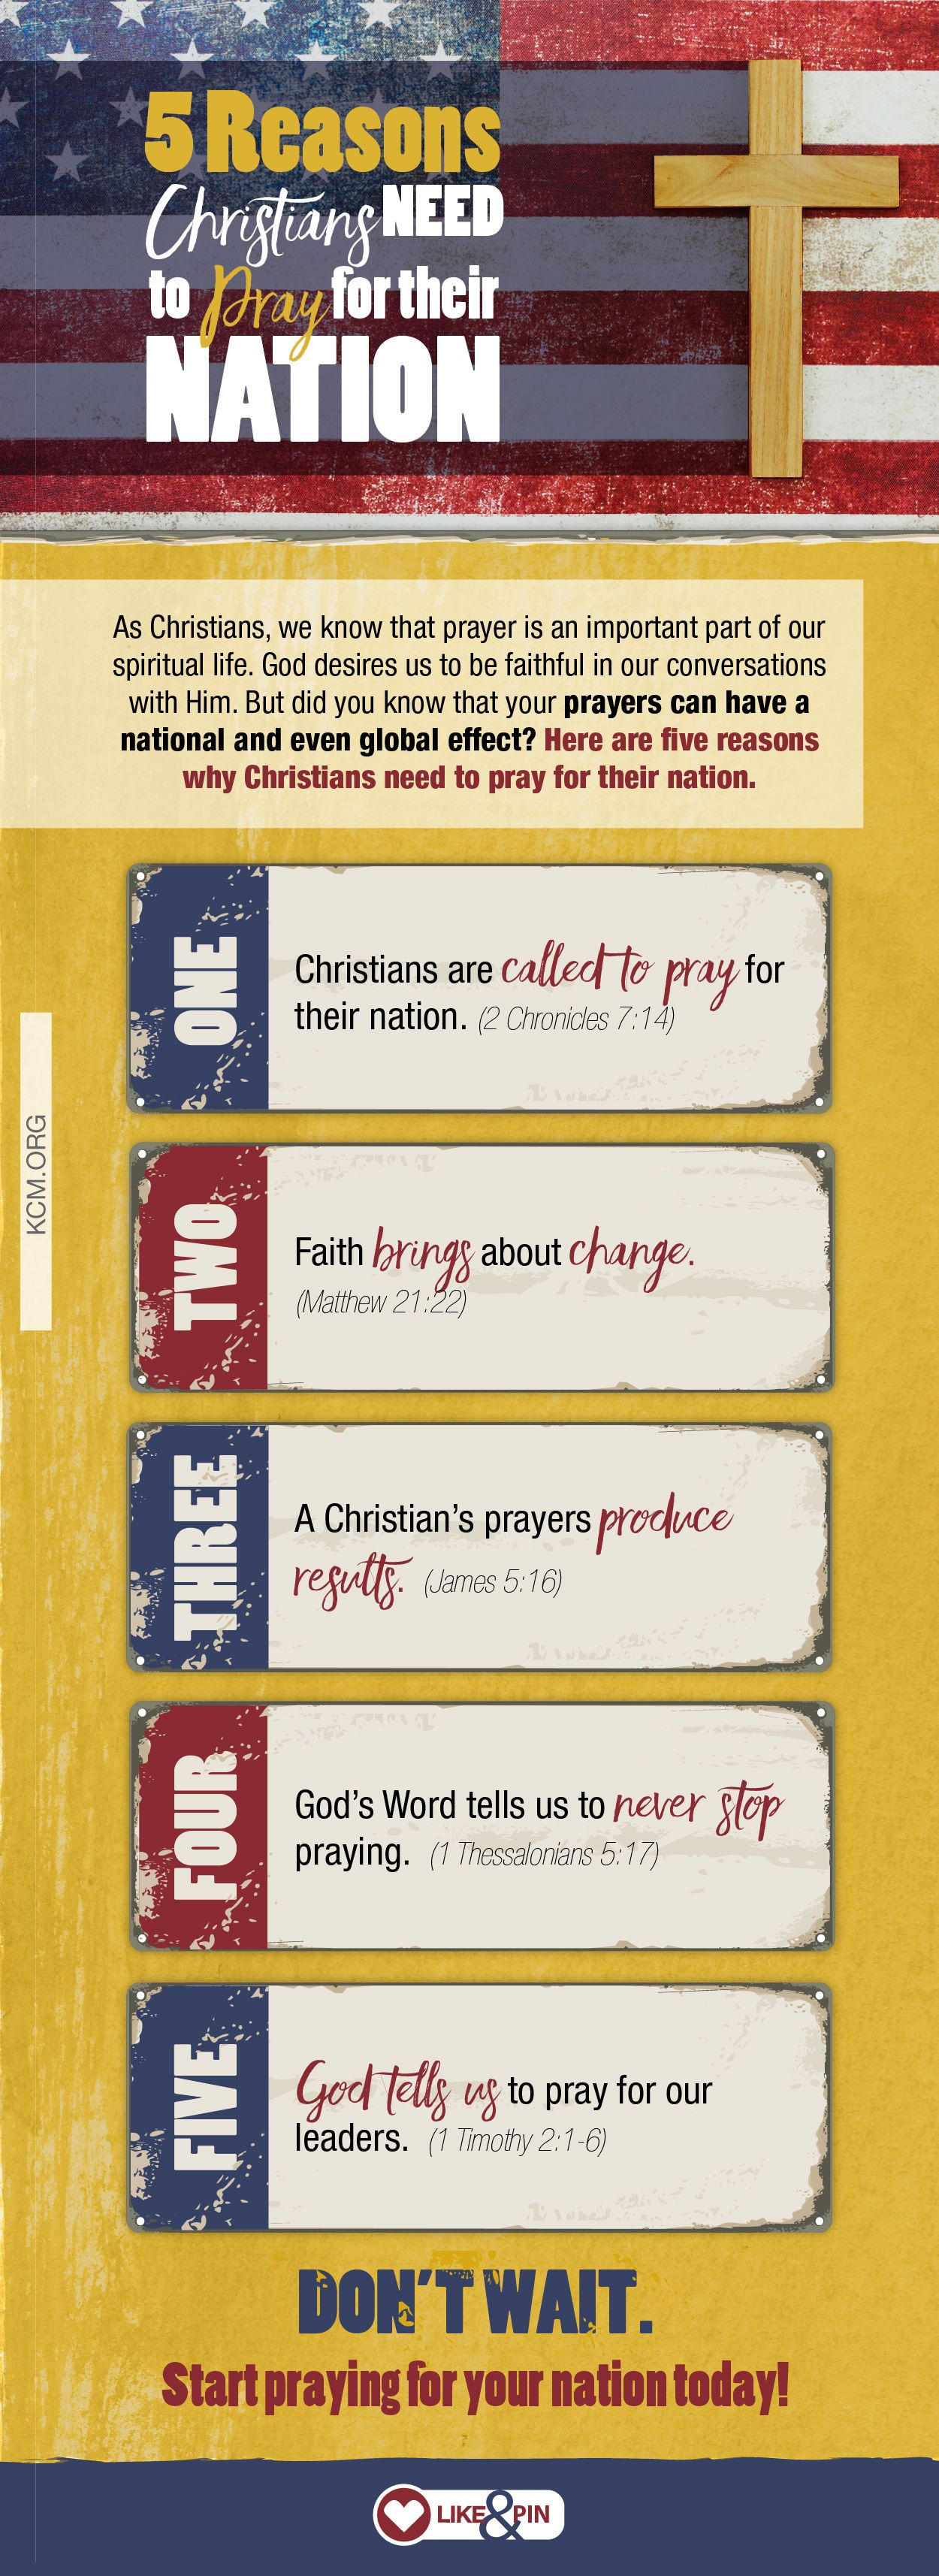 Pin on Prayers, Religious Quotes, & Bible Verses